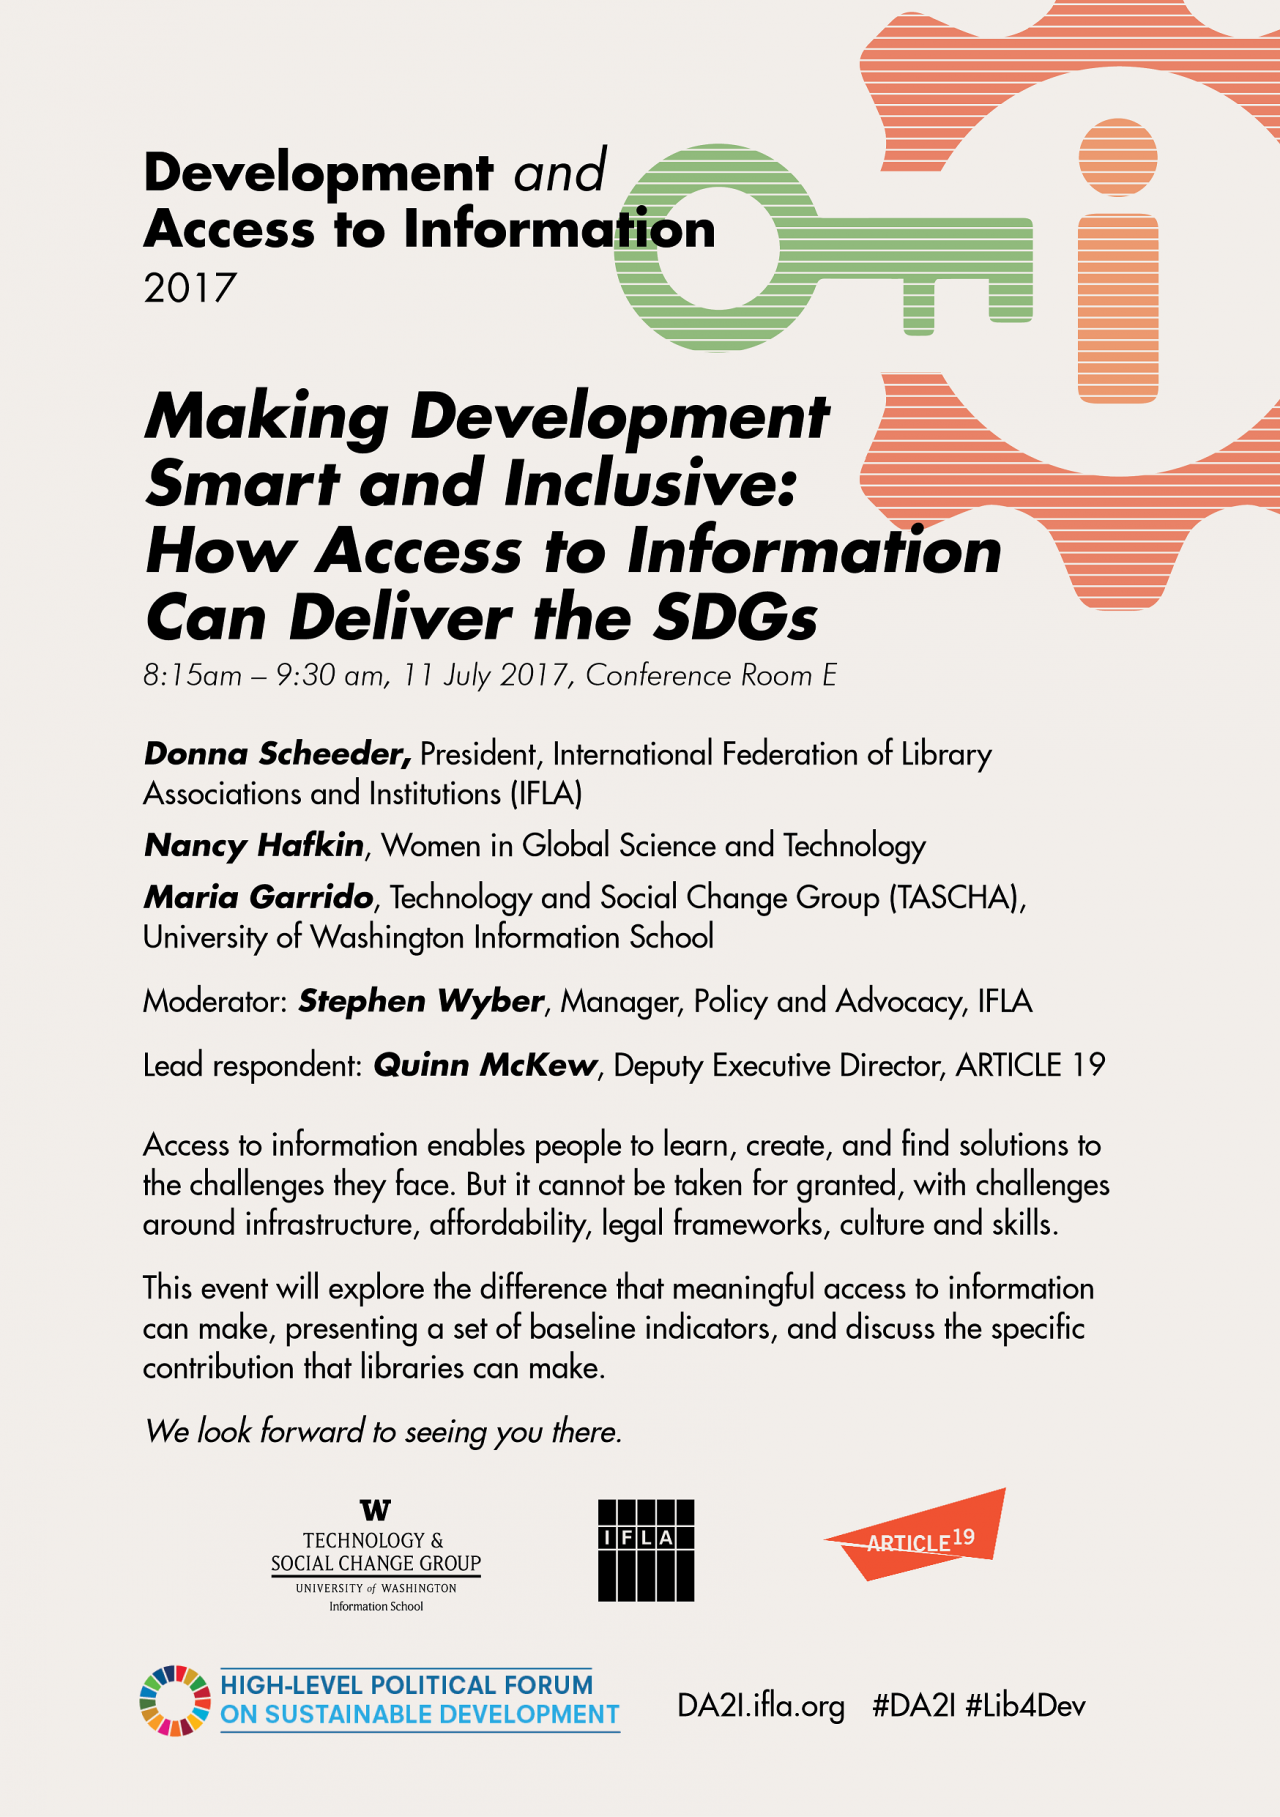 Making development smart and inclusive: How access to information can deliver the SDGs